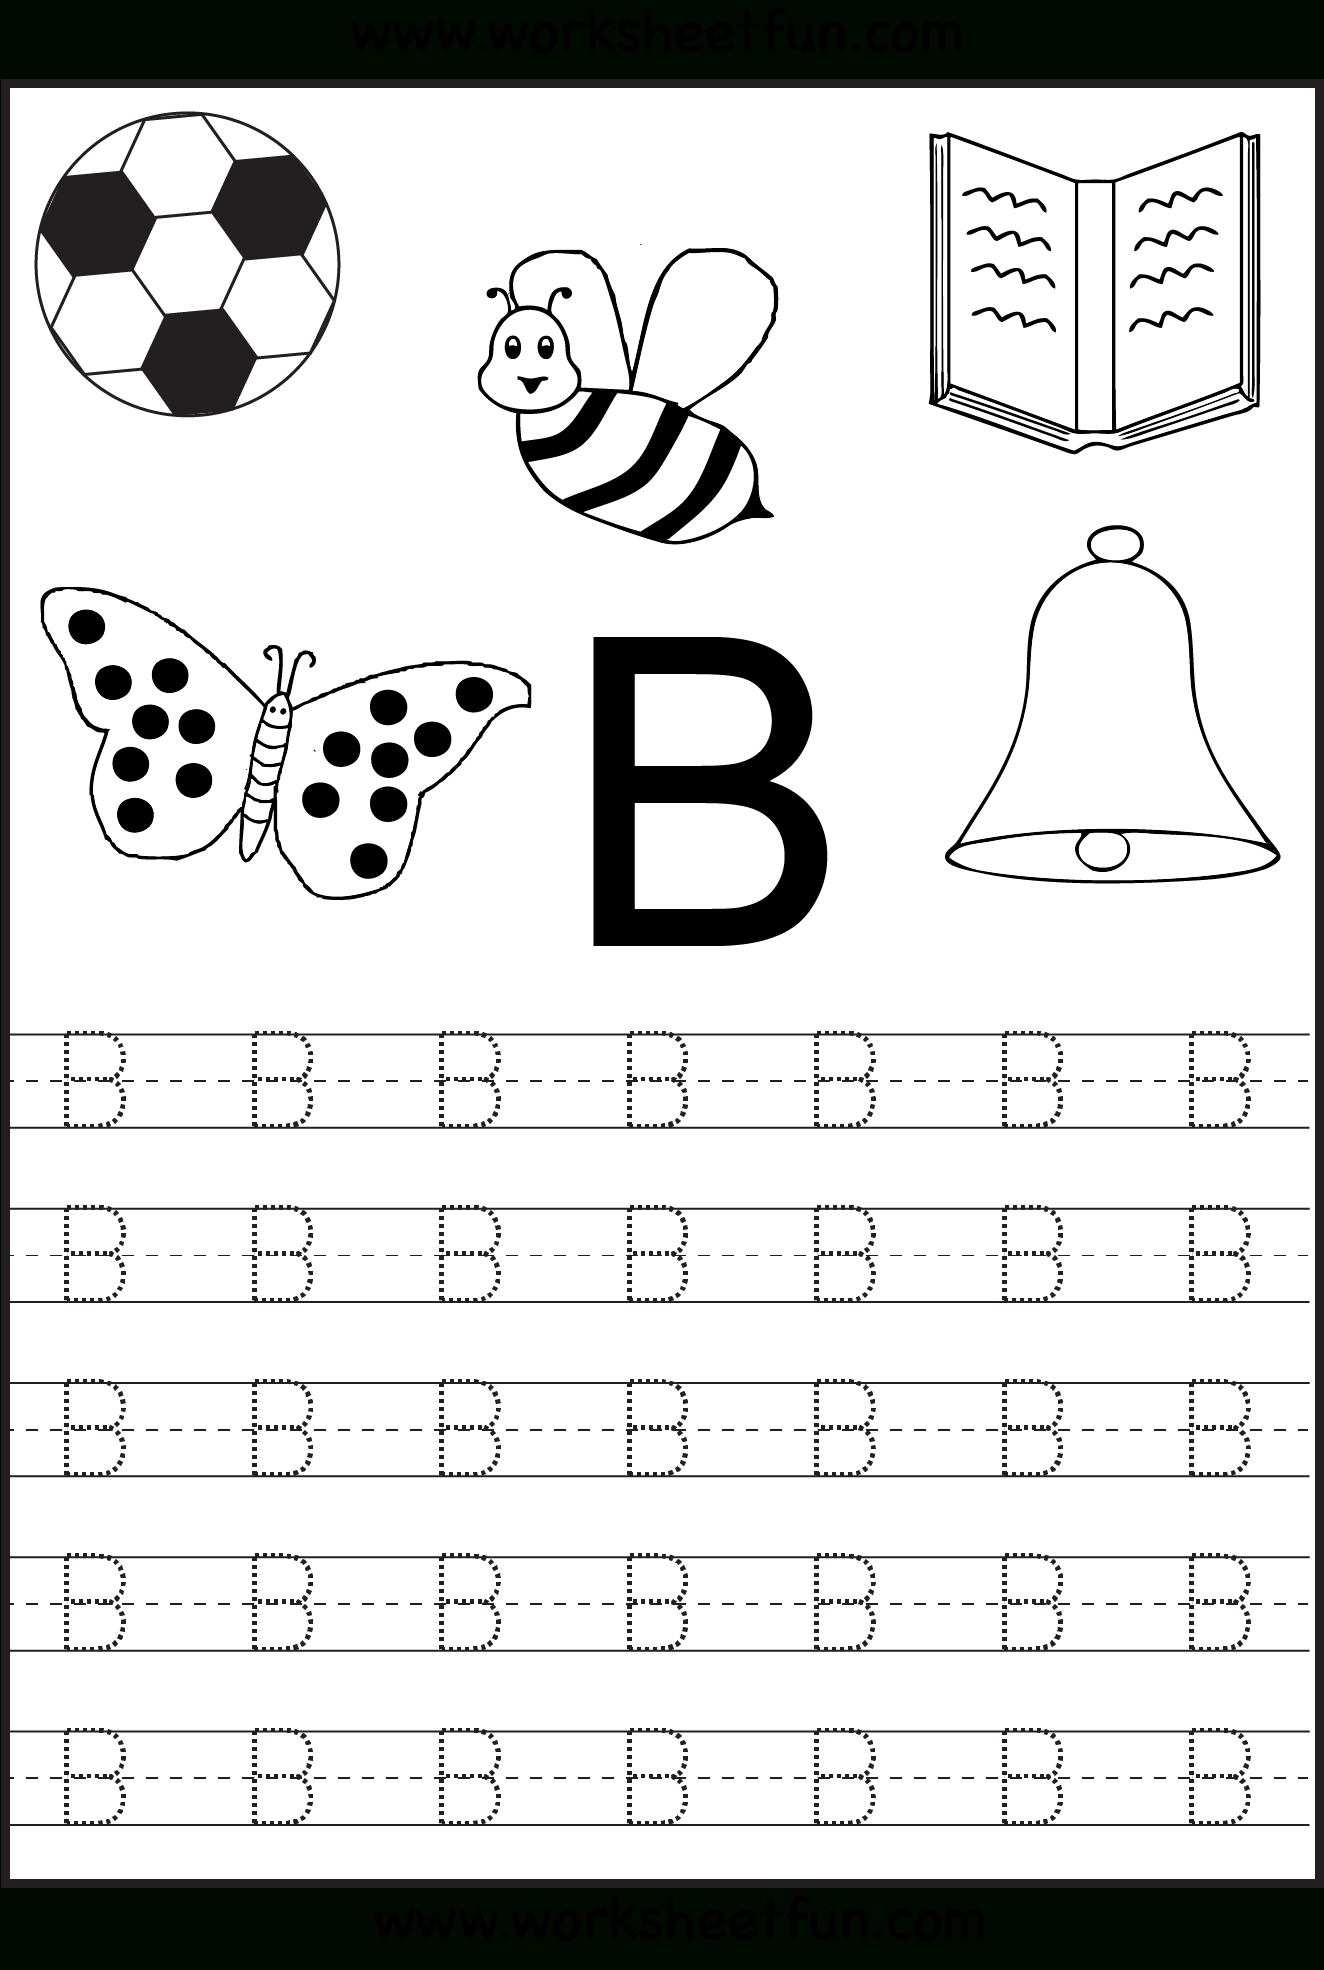 Free Printable Letter Tracing Worksheets For Kindergarten in Letter I Tracing Worksheets For Kindergarten